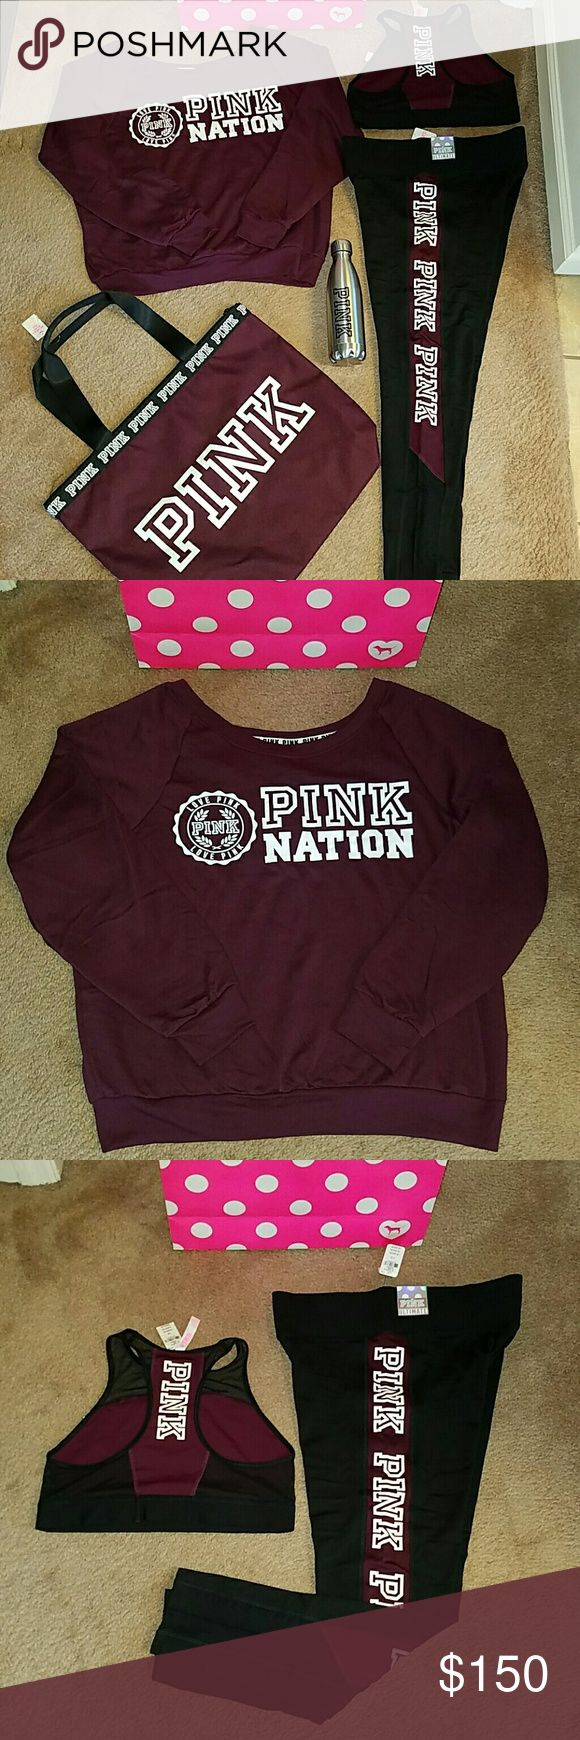 VS PINK limited edition PINK Nation bundle VS PINK limited edition PINK Nation complete set in black orchid. Includes slouchy crew sweatshirt (size L), unlined sports bra with logo on the back (size L), ultimate yoga legging with logo on both sides (size L), tote bag with logo on front and metal water bottle! All brand new with tags and never used! Includes VS PINK logo shopper! PINK Victoria's Secret Pants Leggings